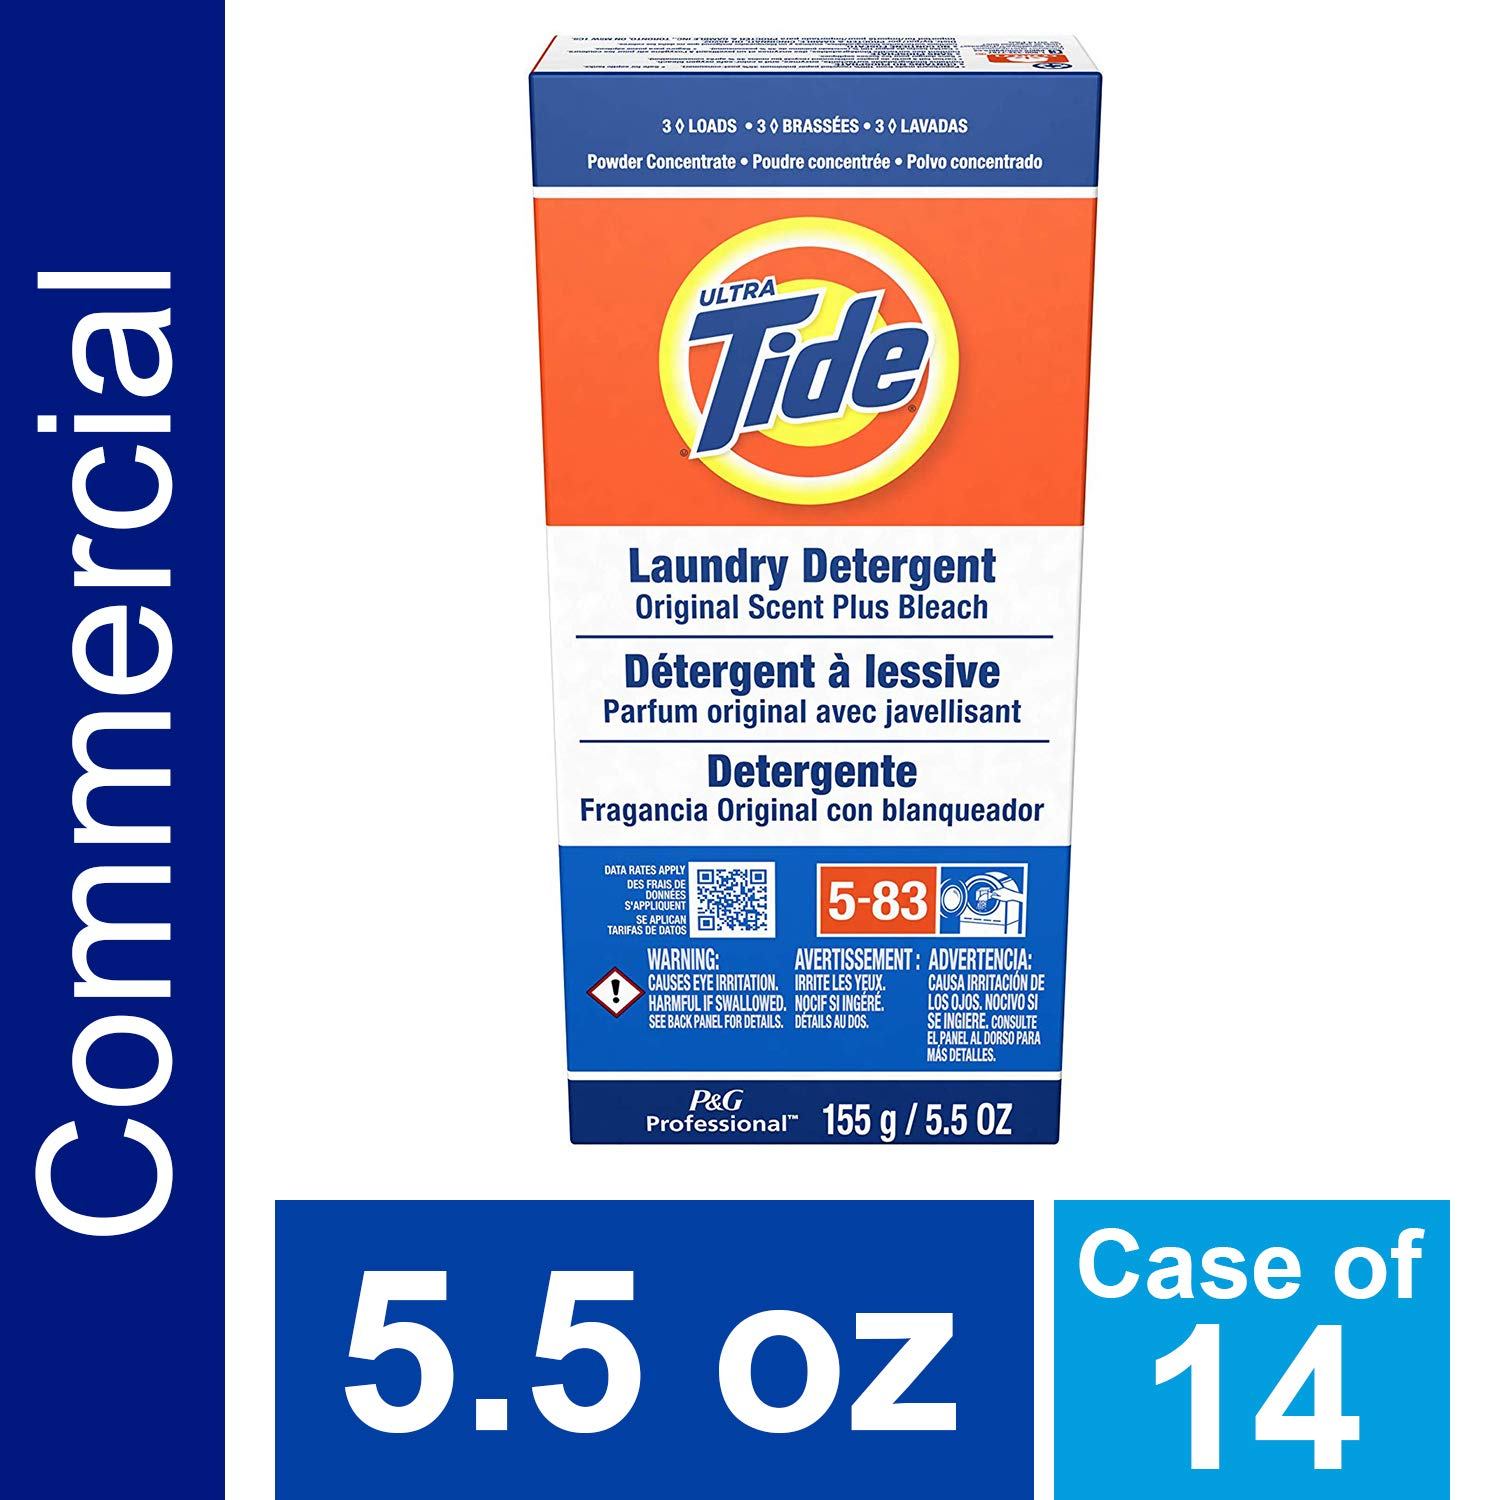 Laundry Detergent from Tide, 3-Load Powder Detergent with Bleach, 5.5 oz. (Case of 14) by P&G Professional